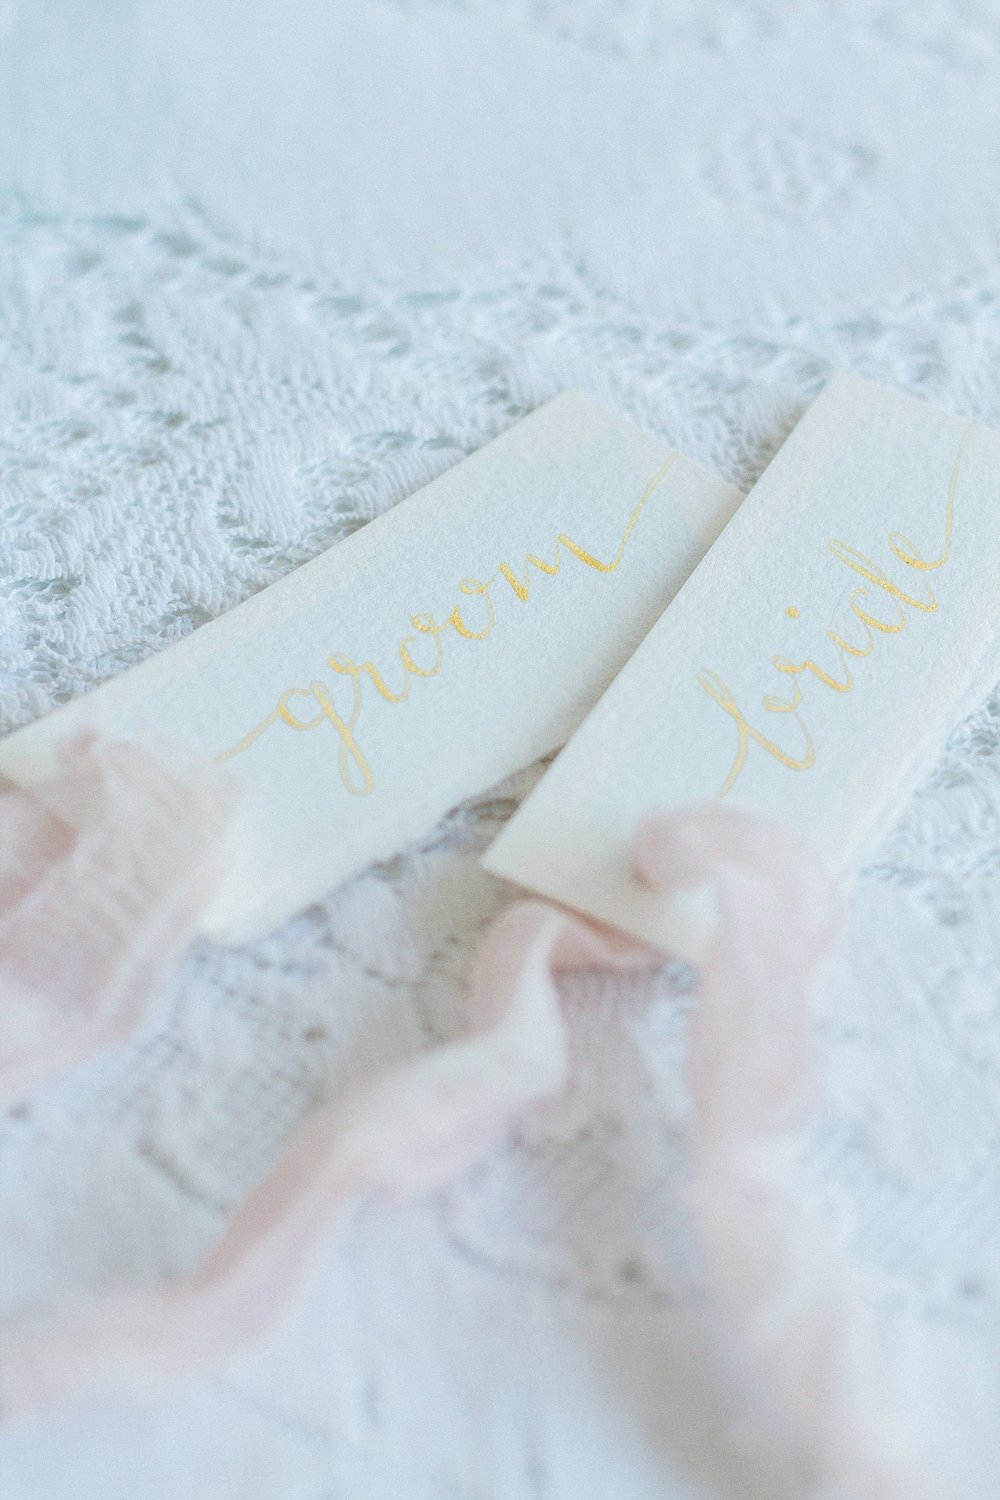 Vintage Amy Wedding Styling-Soft and Dreamy Wedding-Calligraphy Place Settings